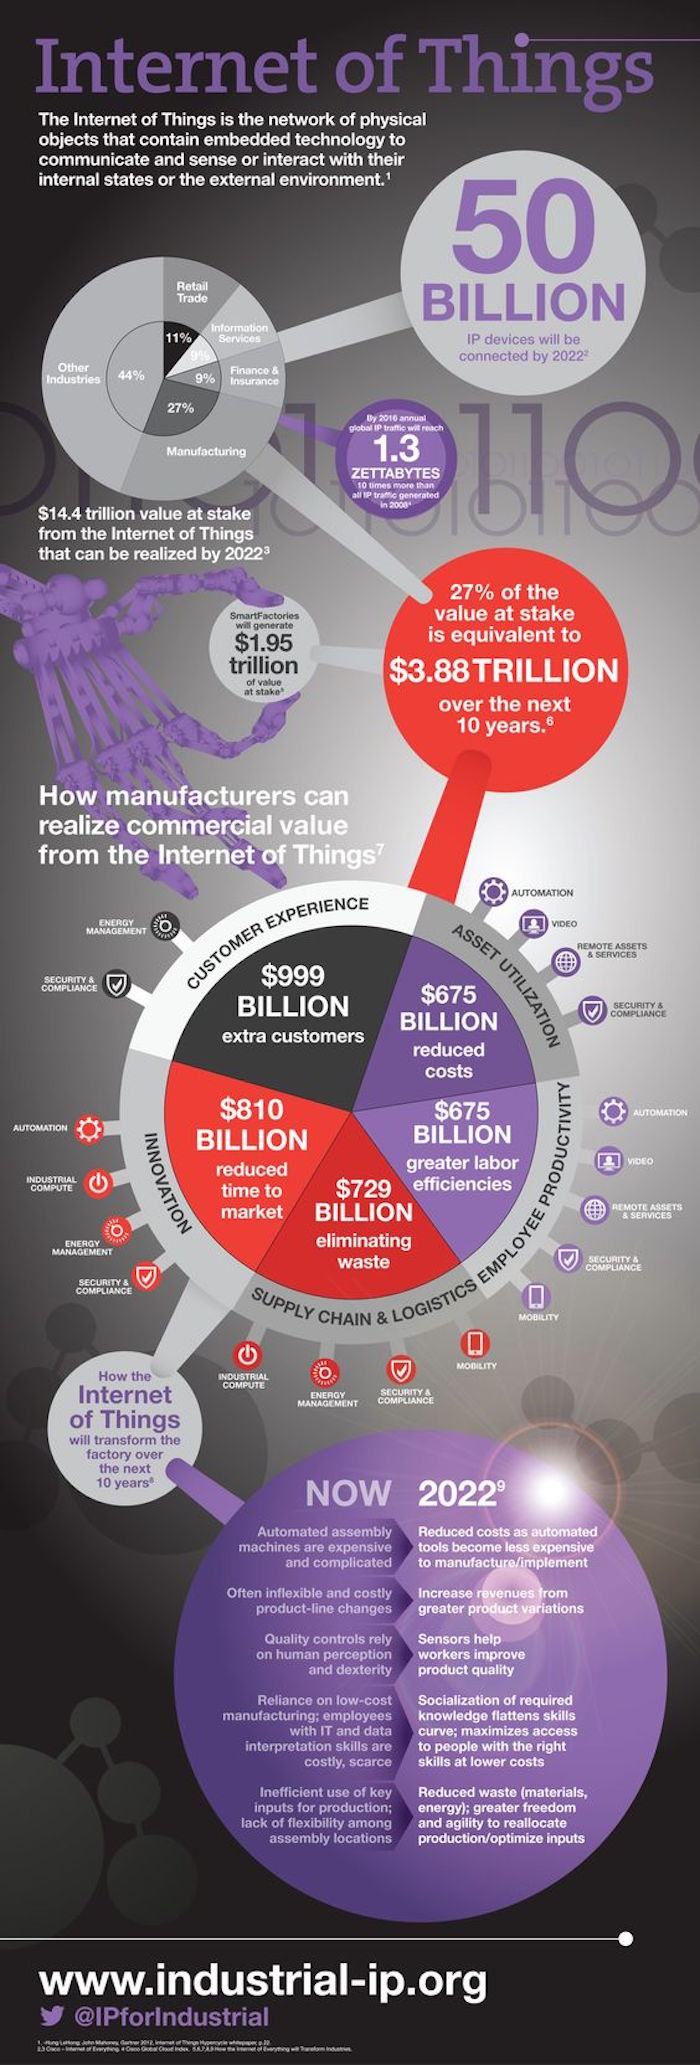 Internet-of-things-infographic